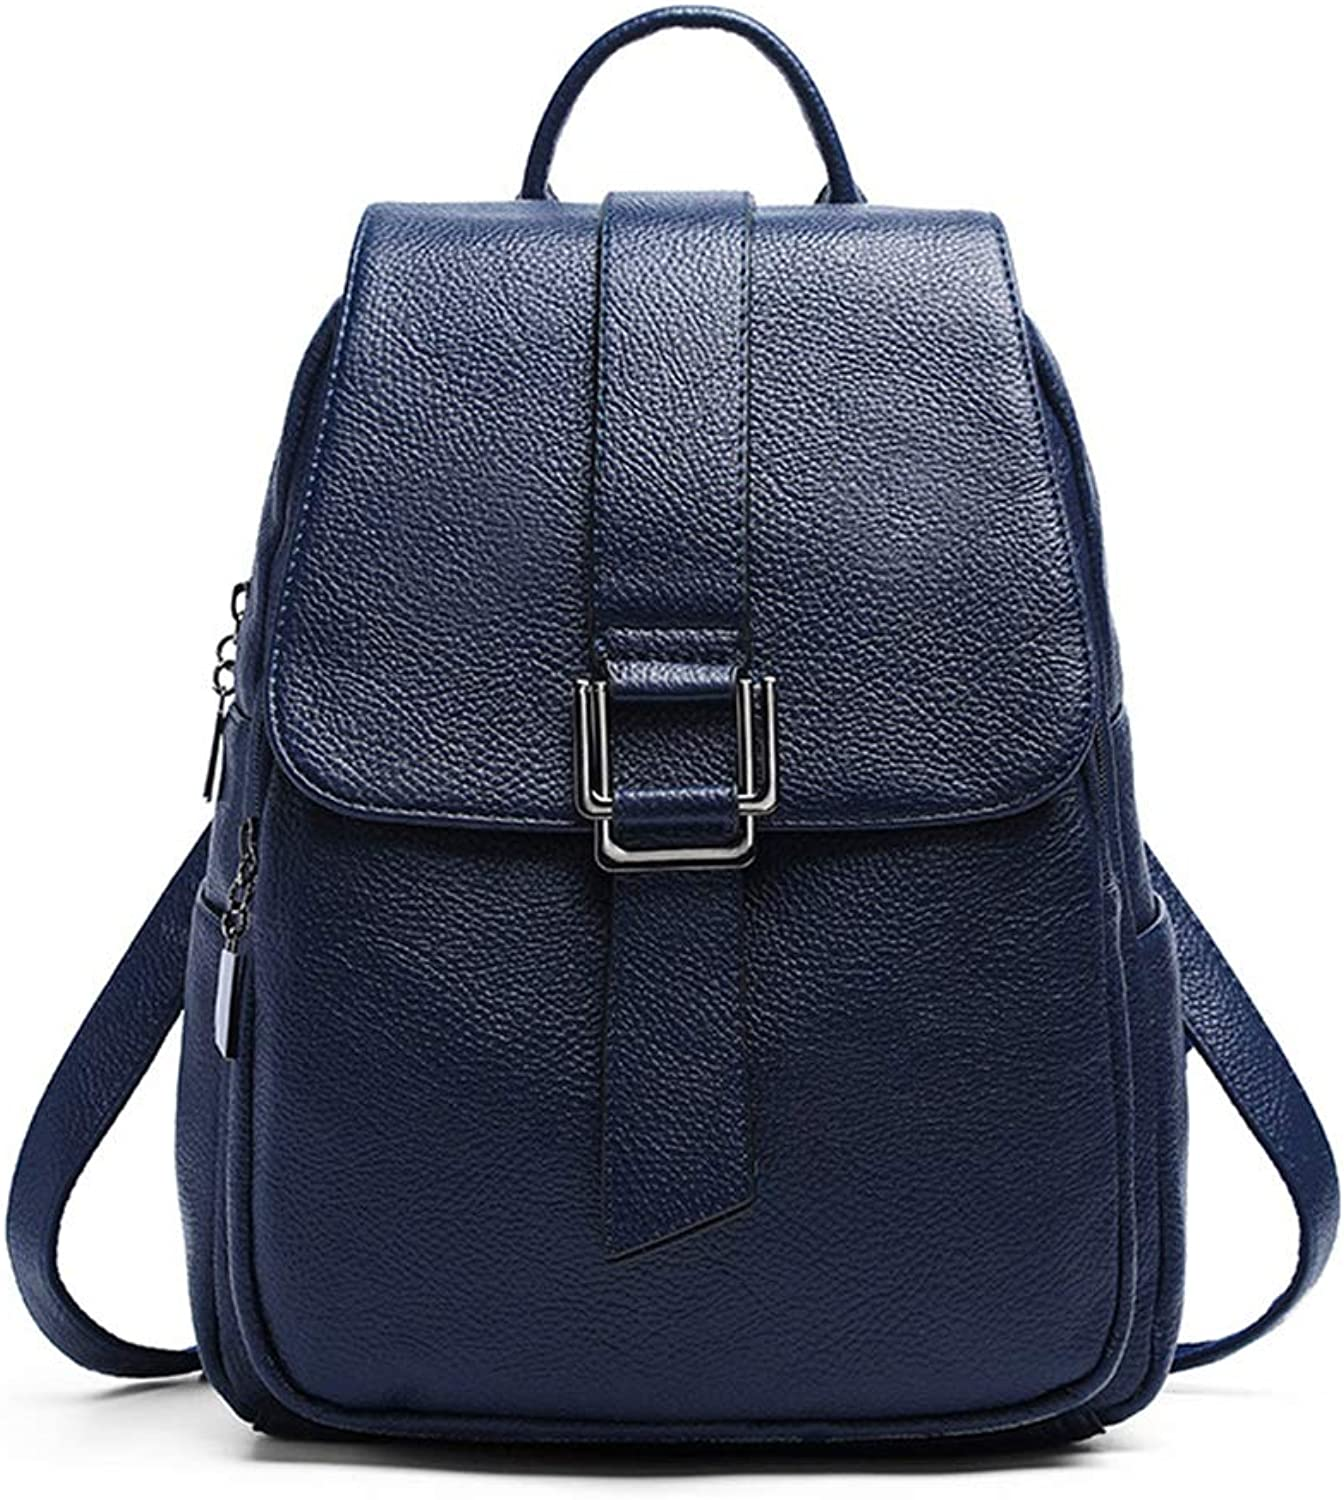 Ladies leather backpack casual backpack fashion shoulder bag travel bag mini backpack wallet